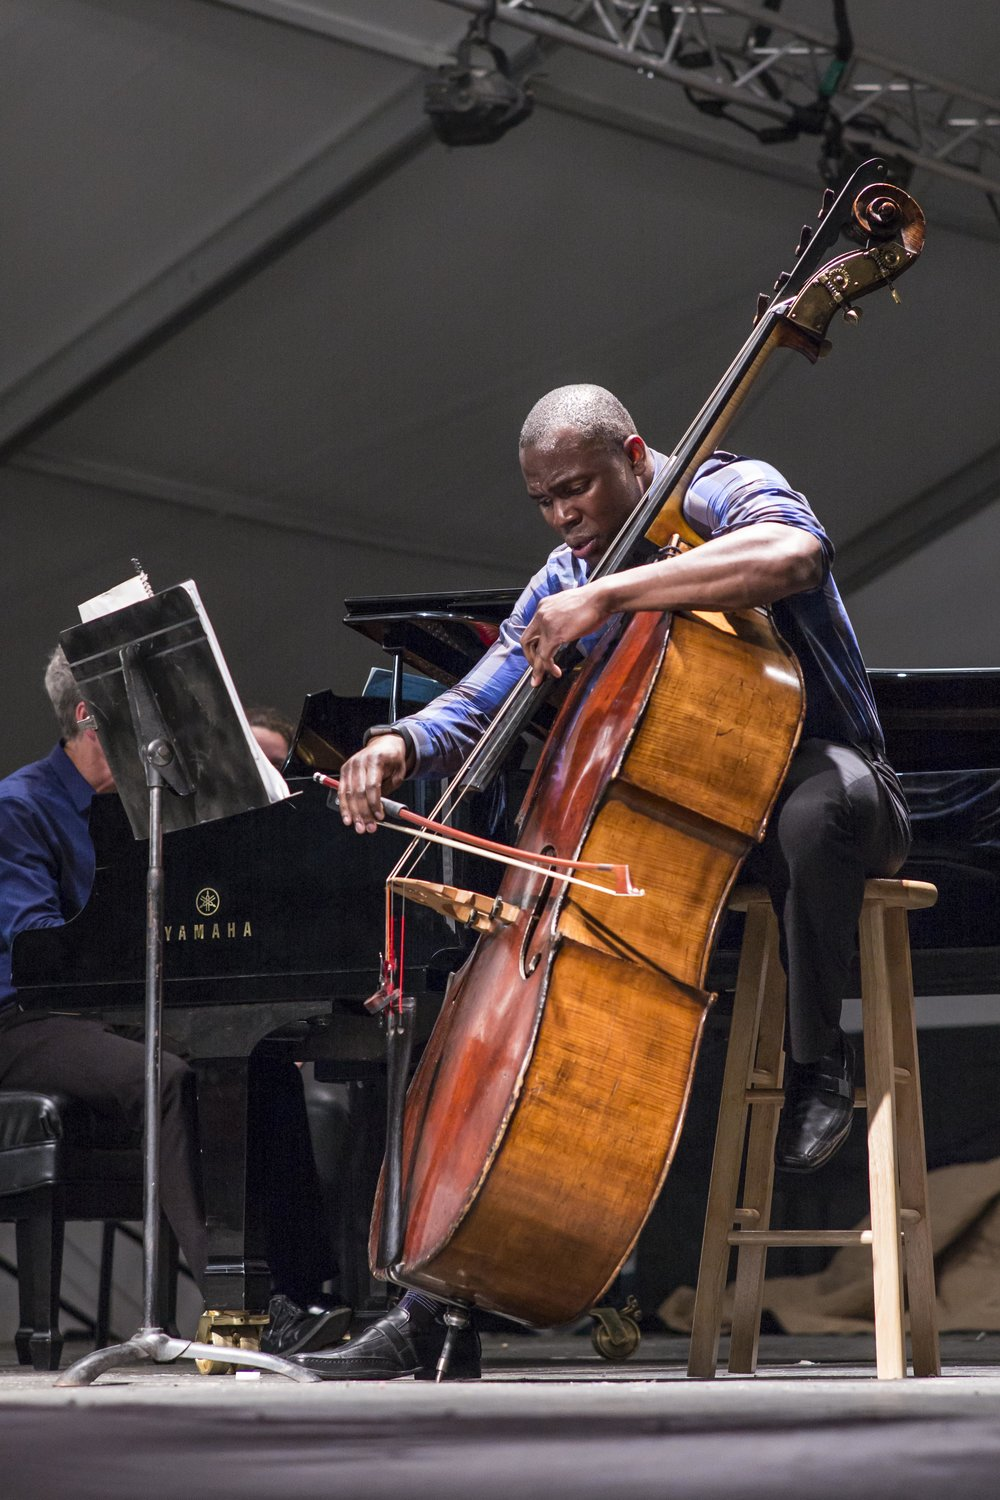 Joseph Conyers performing at the 2016 Wintergreen Summer Music Festival